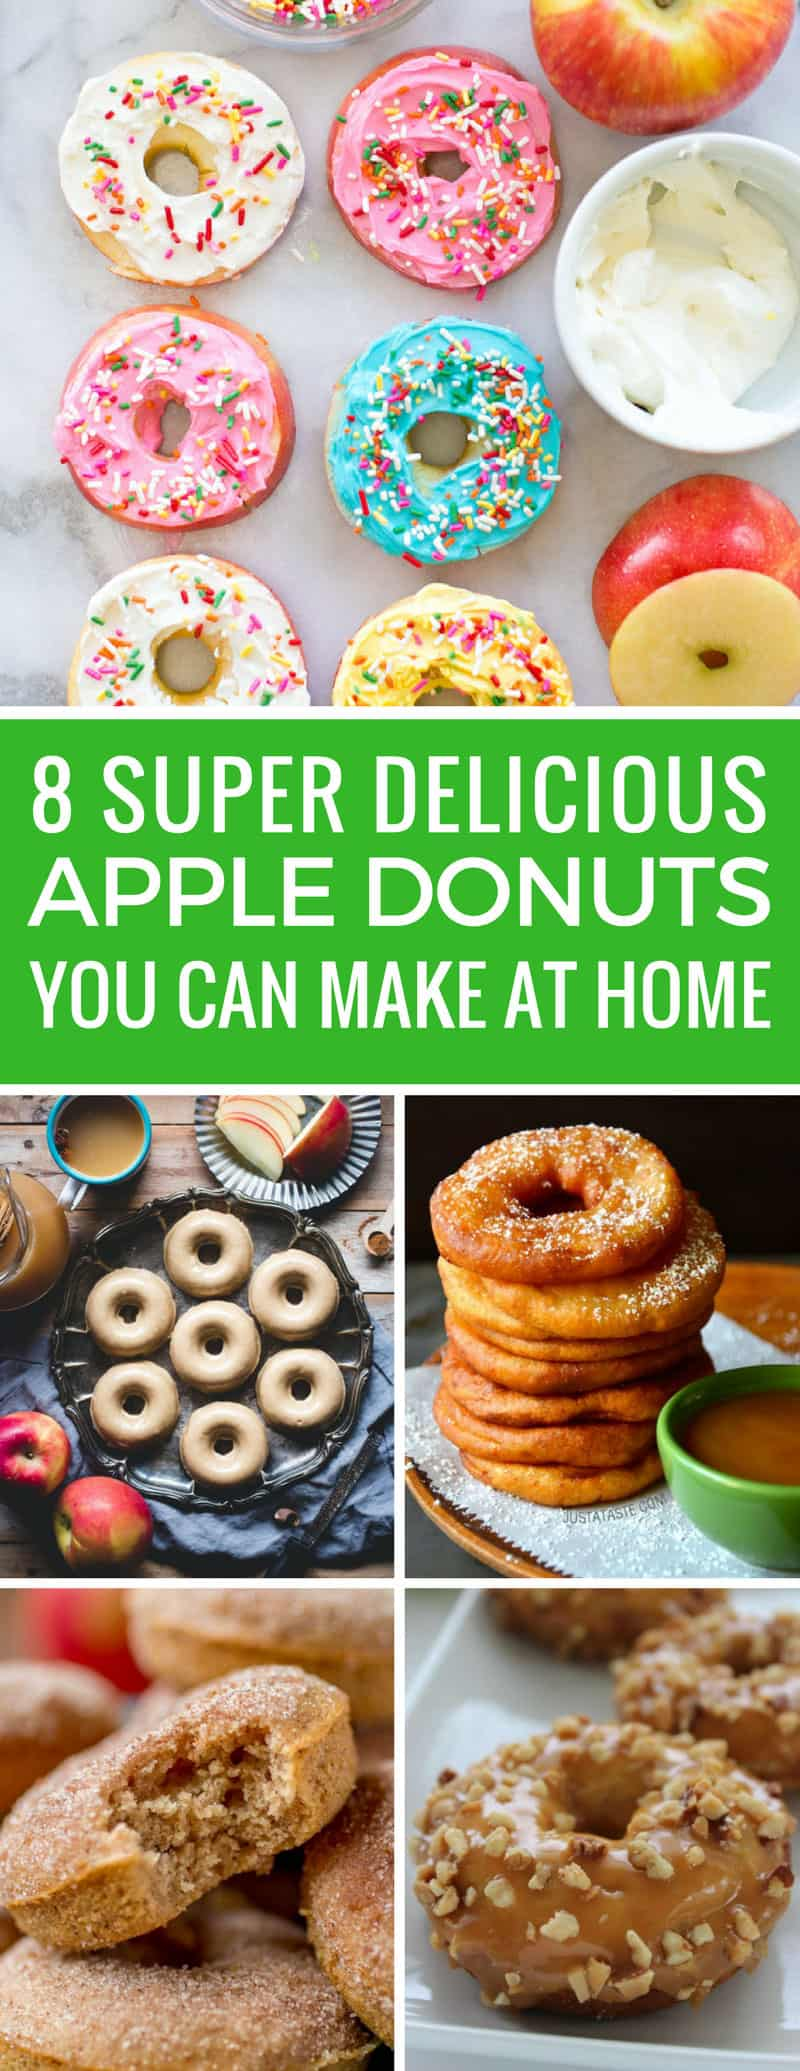 Yum! These easy apple donut recipes are just what we need for the Fall! Thanks for sharing!